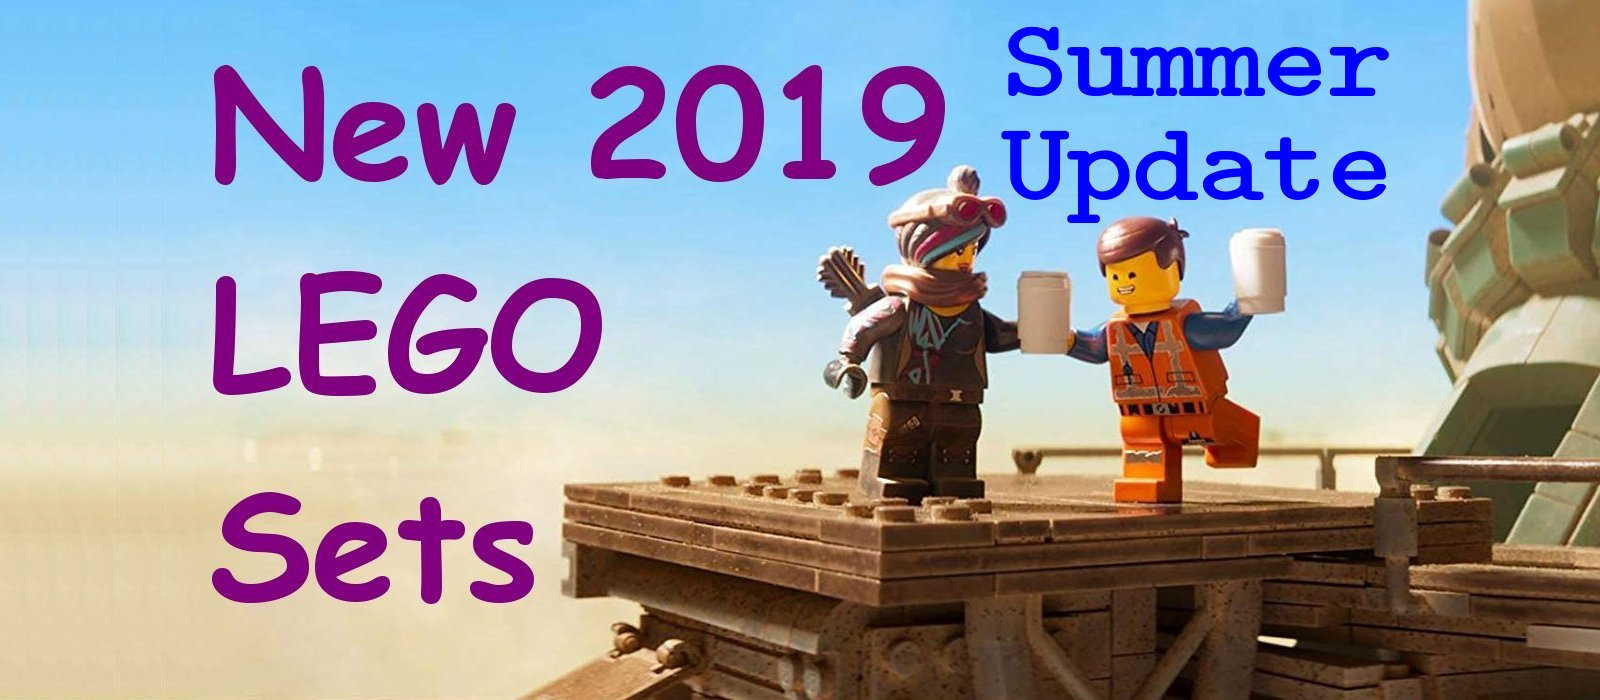 New 2019 Lego Sets Rebrickable Build With Lego